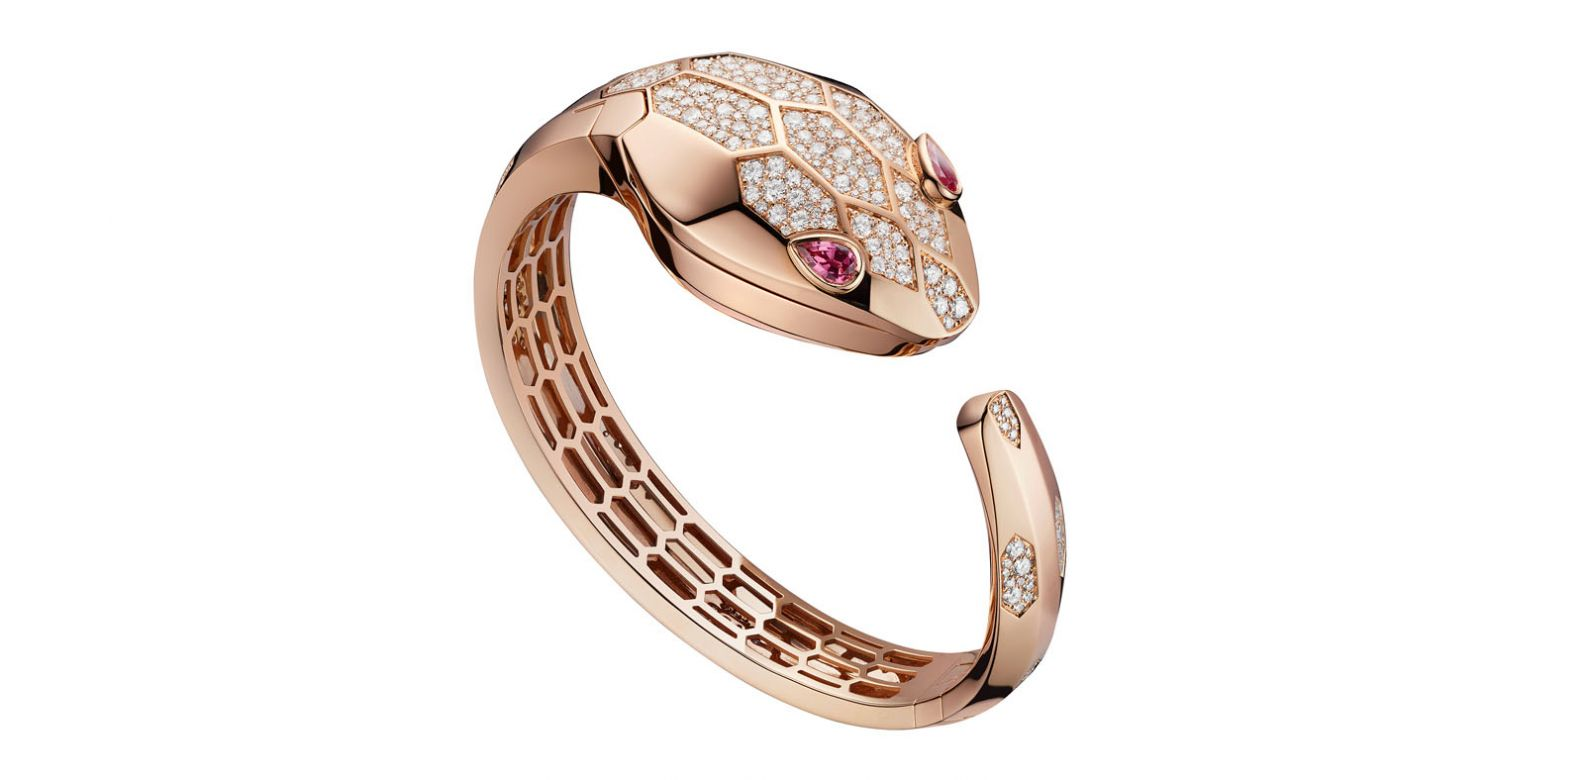 Bvlgari Serpenti Seduttori watch bangle in pink gold, from The Shoppes at Marina Bay Sands